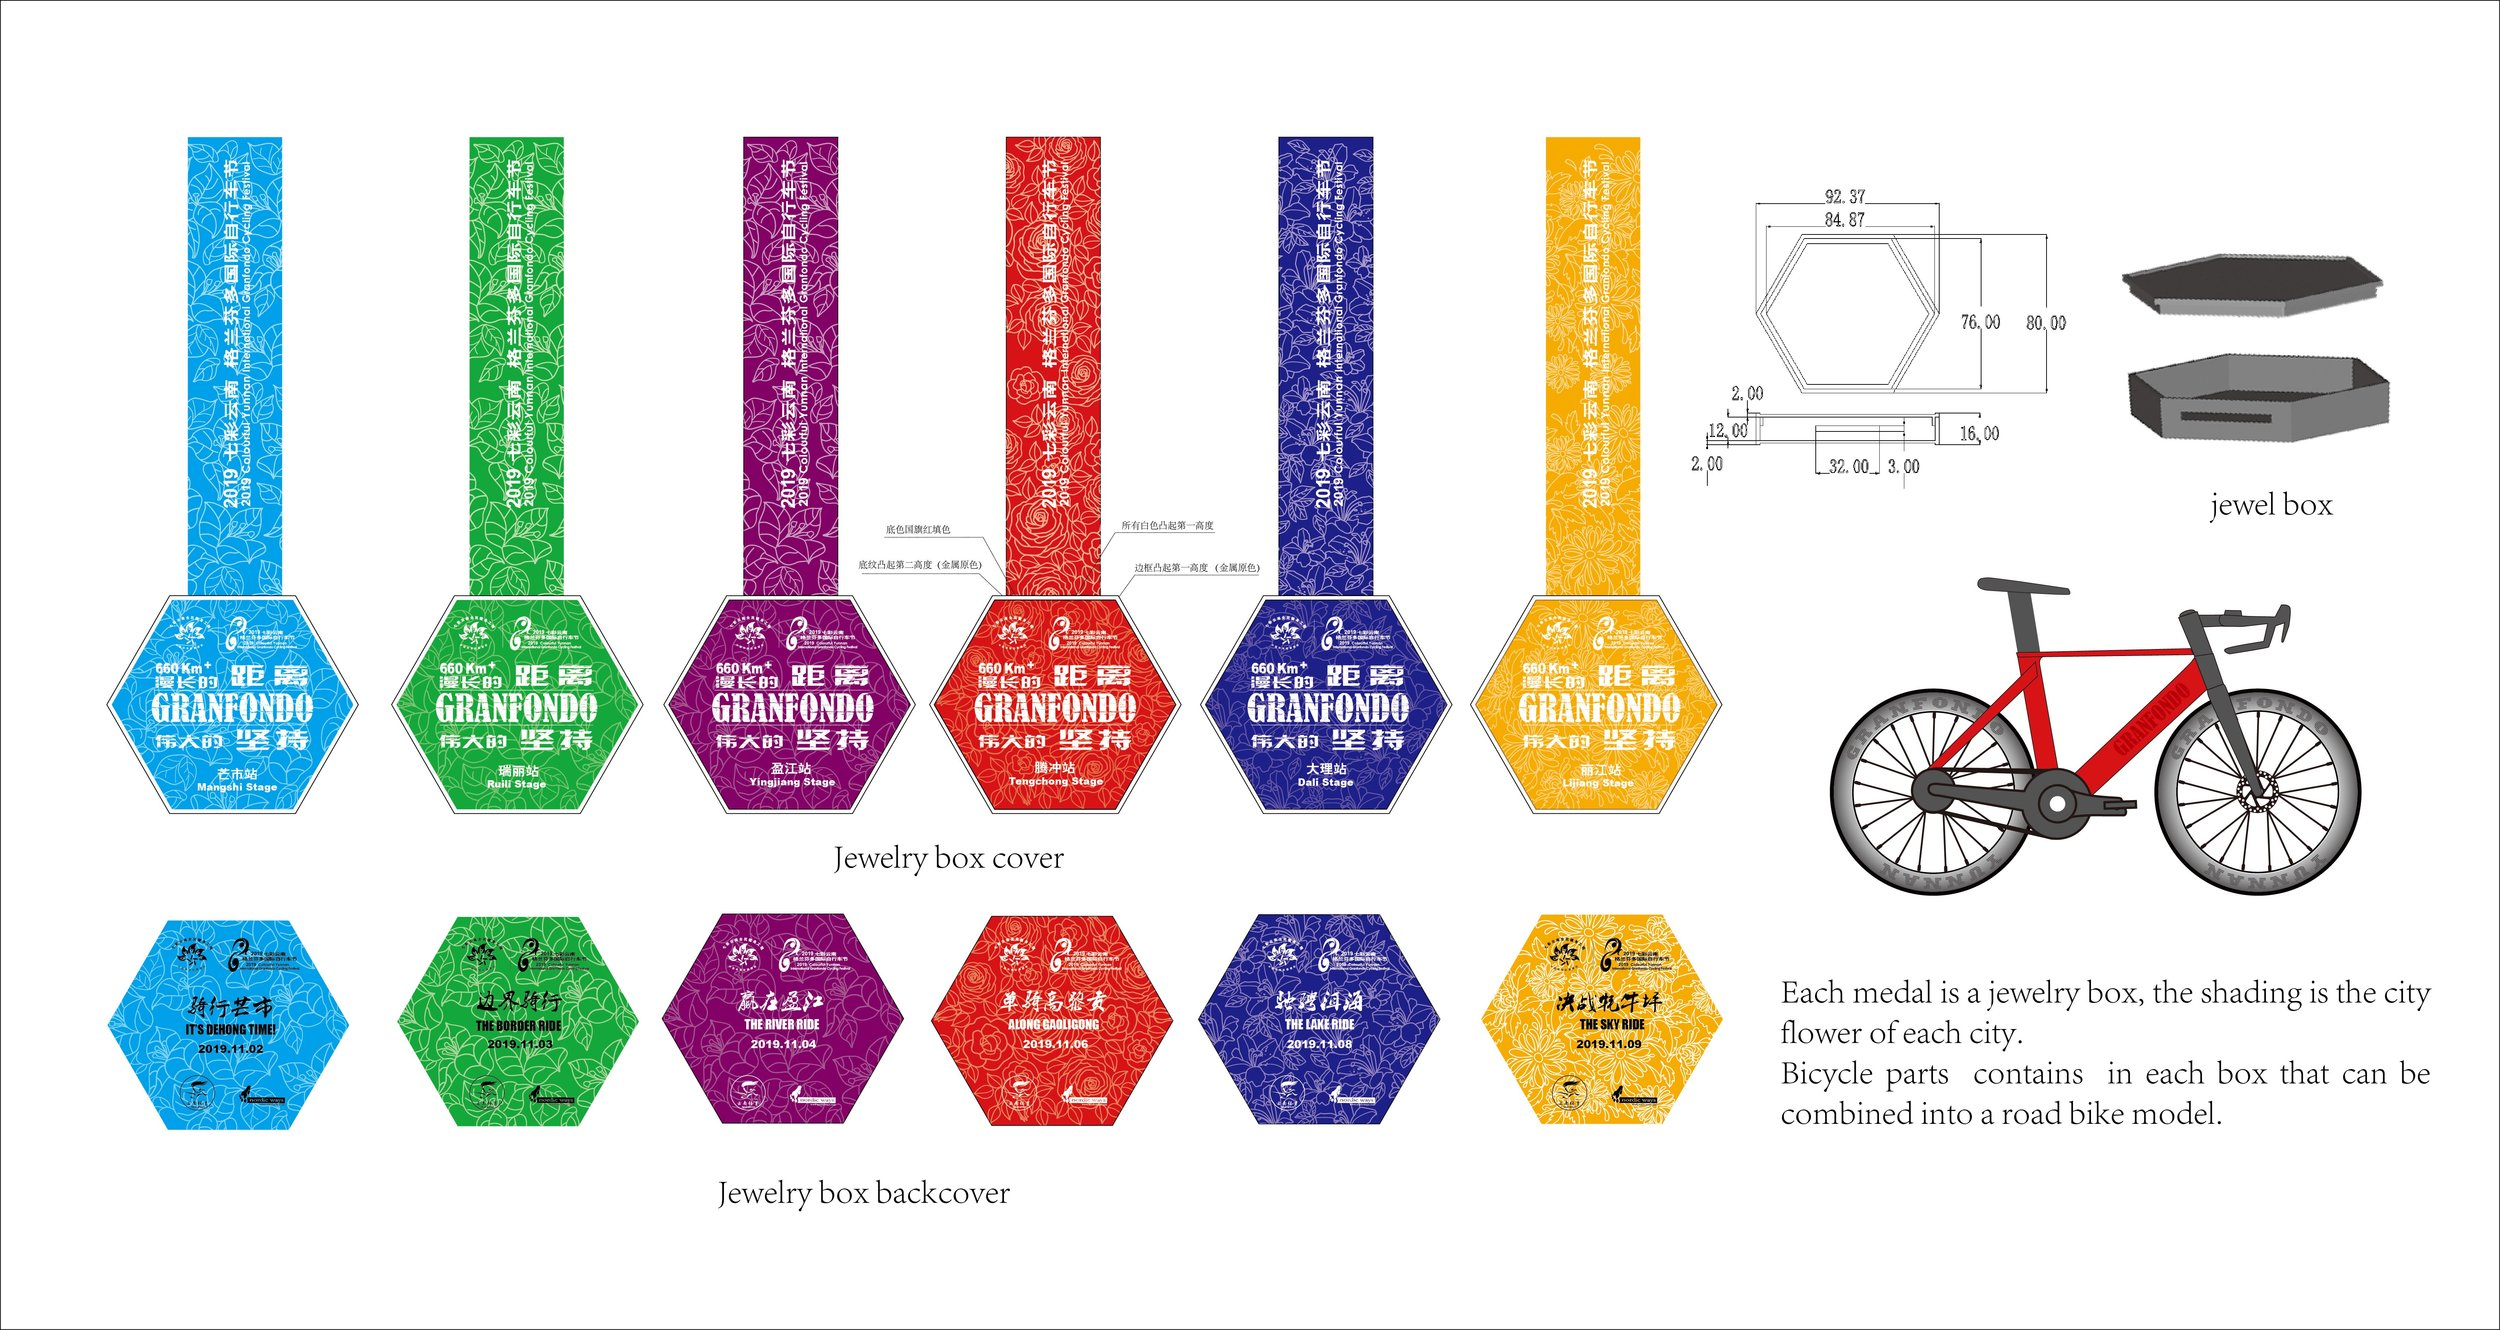 Draft design of this year's Granfondo Yunnan medals